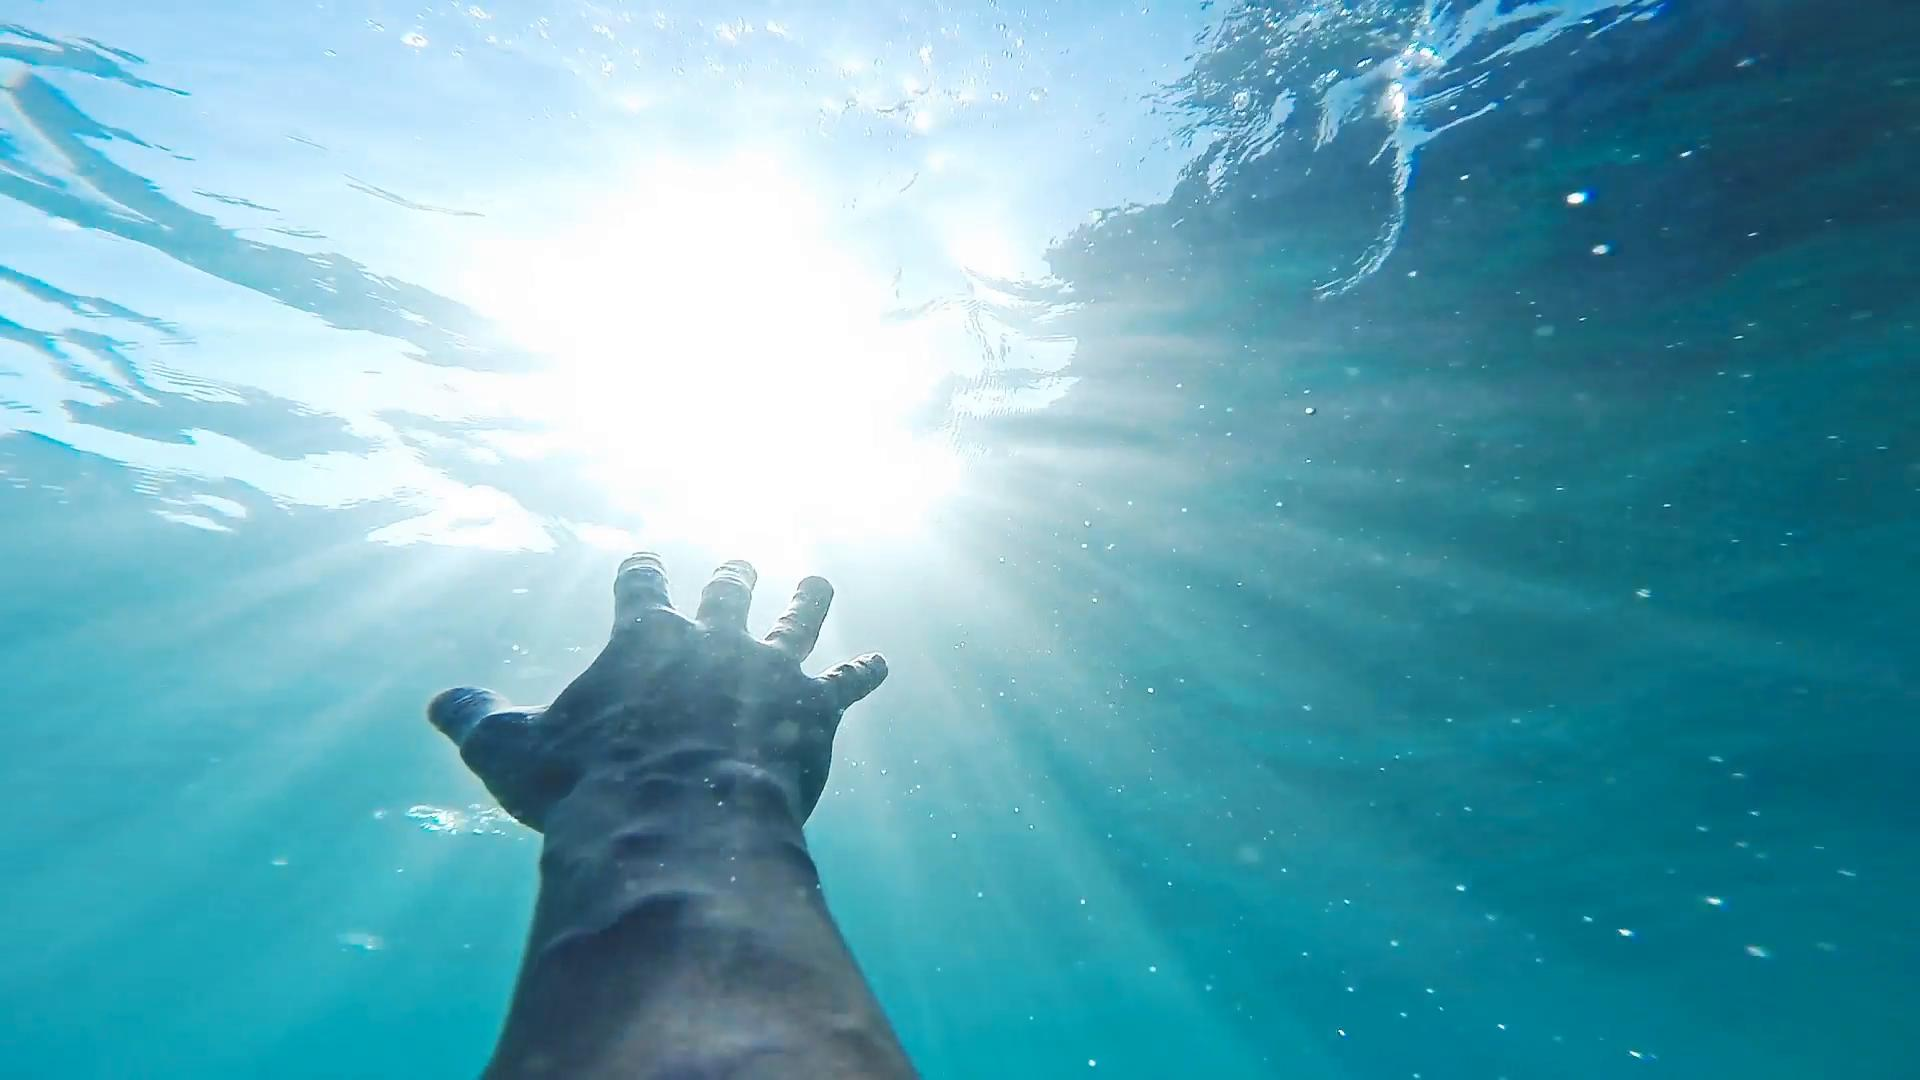 savior-rescuer-salvation-hand-man-drowning-saved-by-lifeguard-underwater-sun-shining-rescue-new-hope-second-chance-concept-gopro-hd_4yspe9-fz__F0000